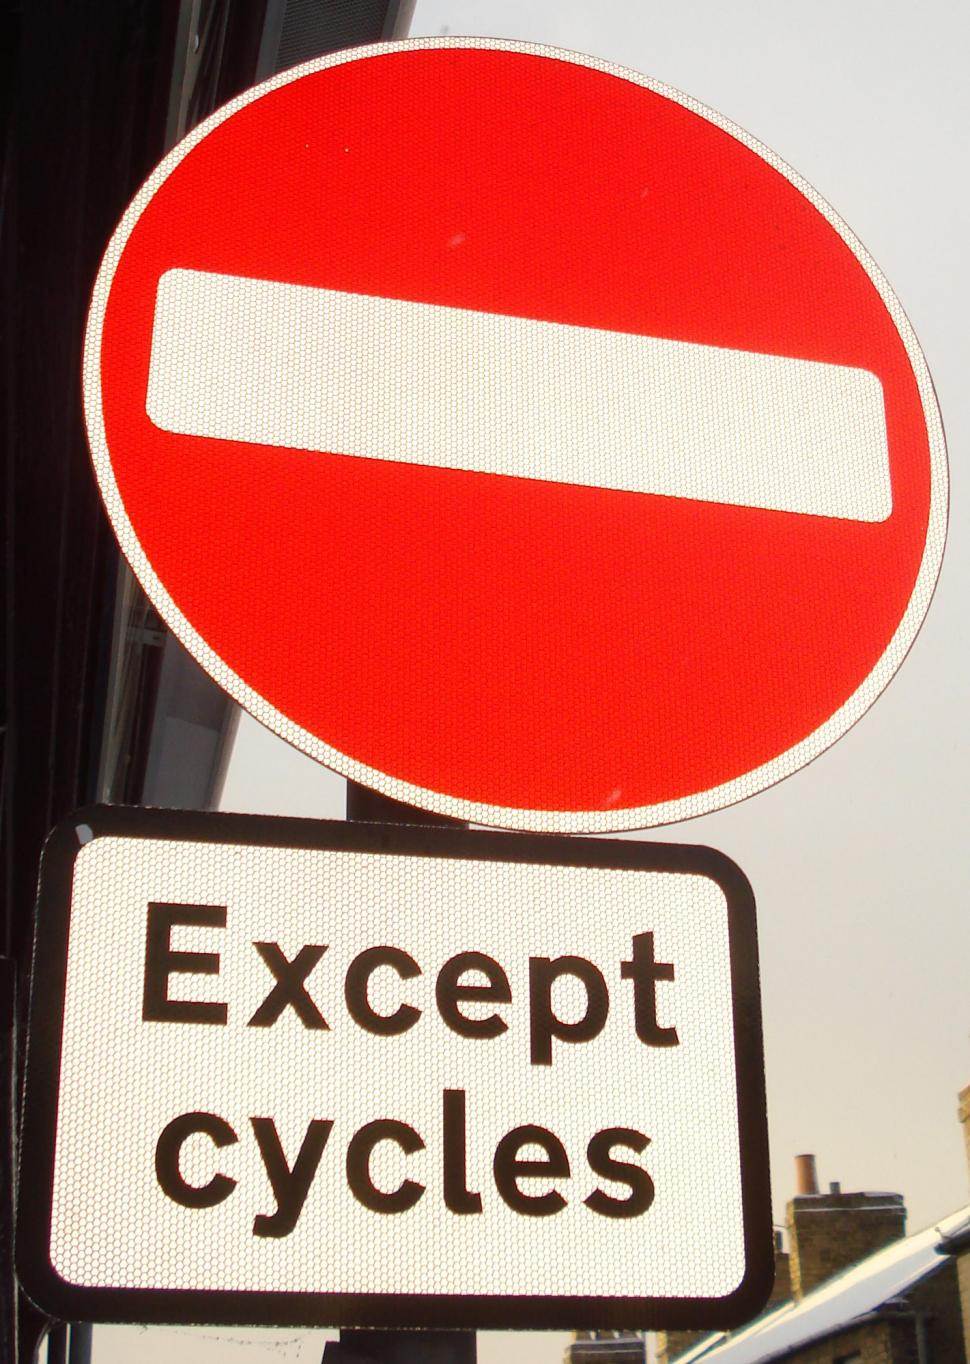 No Entry Except Cycles.jpg